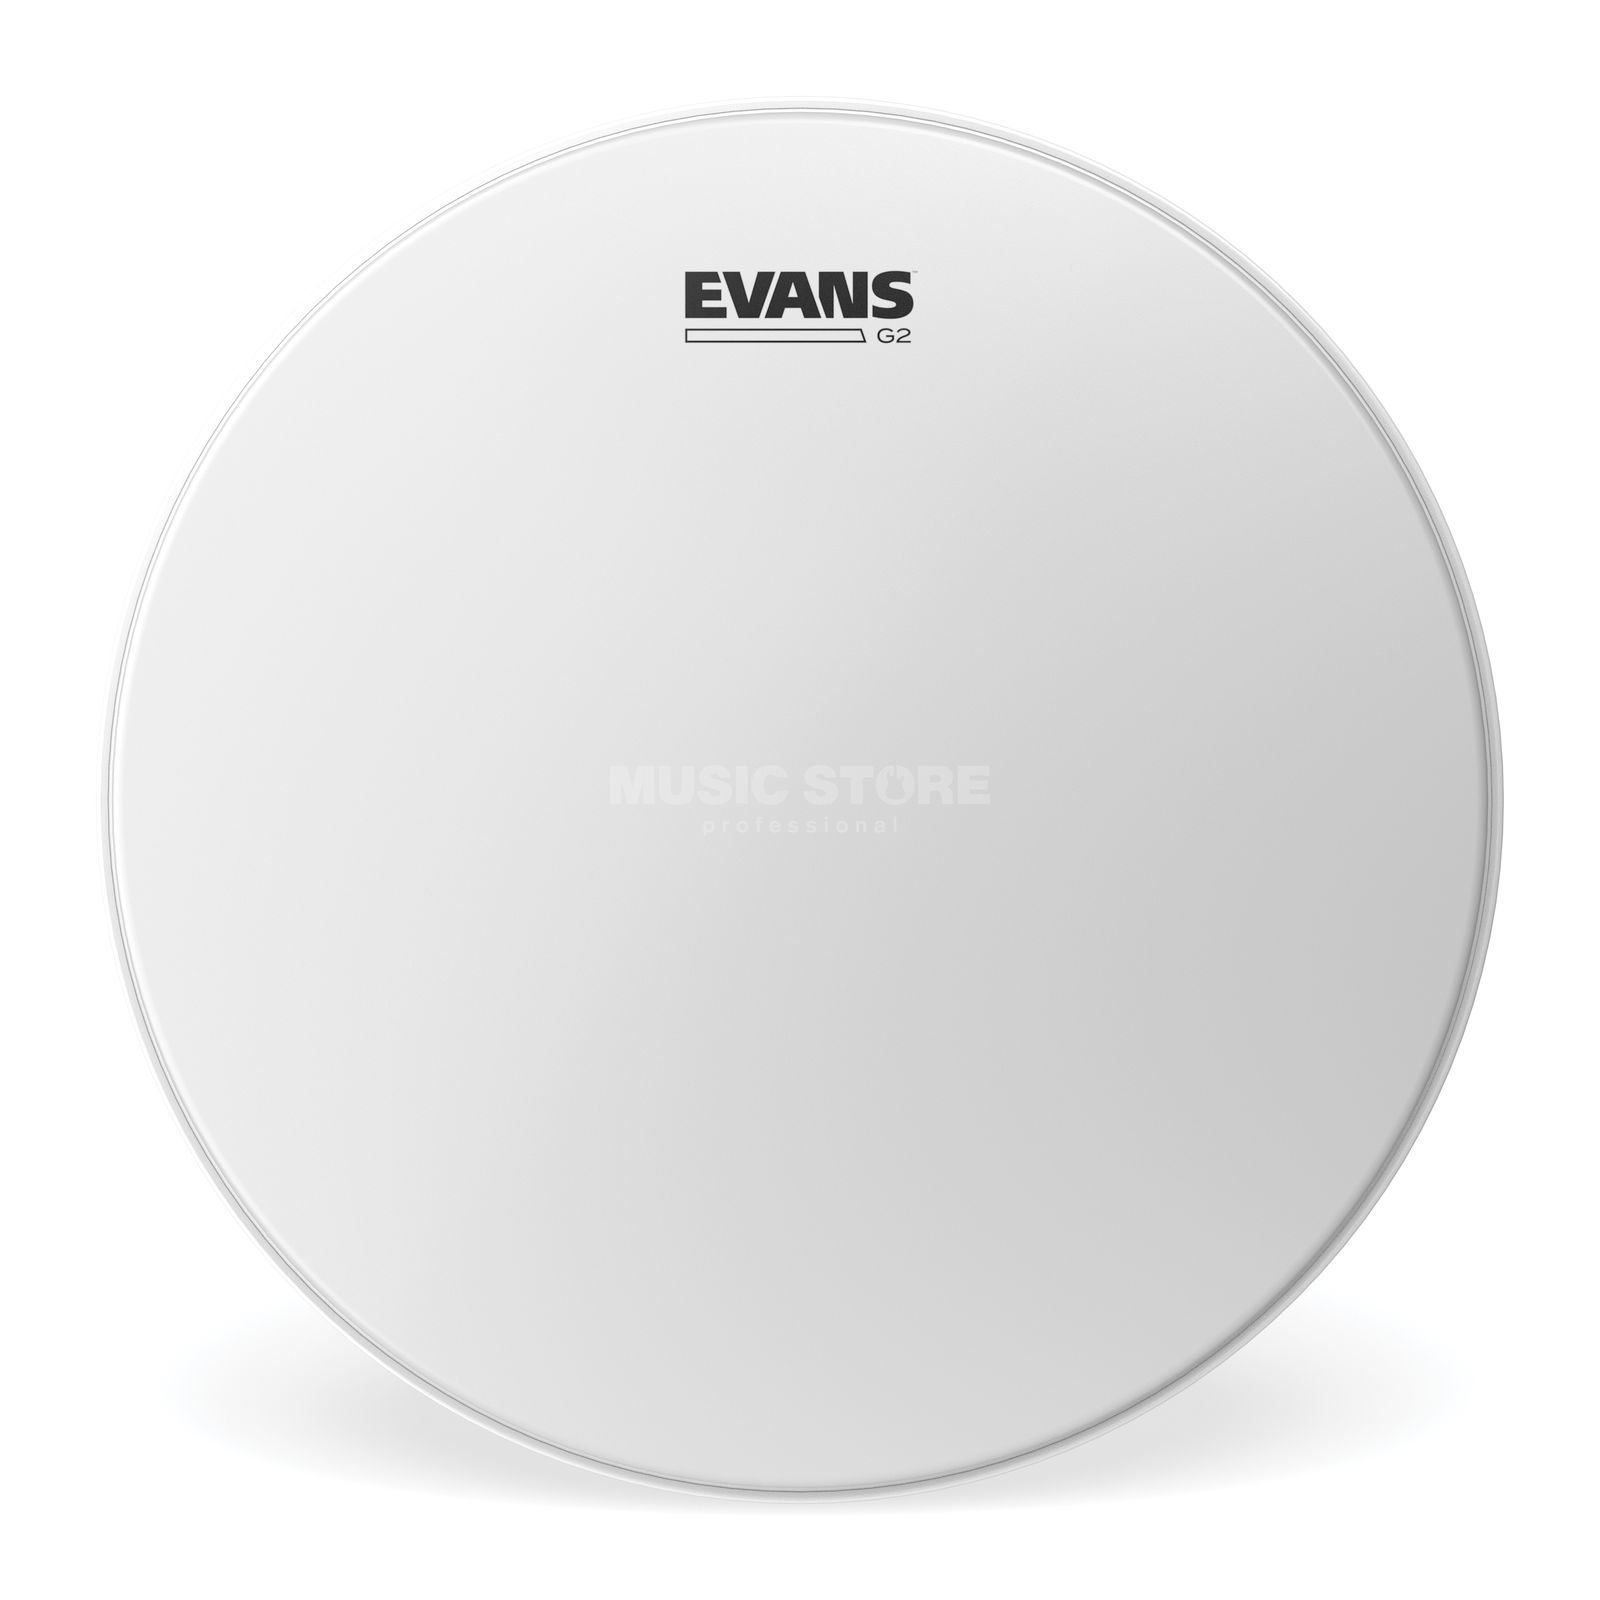 "Evans G2 Coated 14"", B14G2, Tom Batter Product Image"